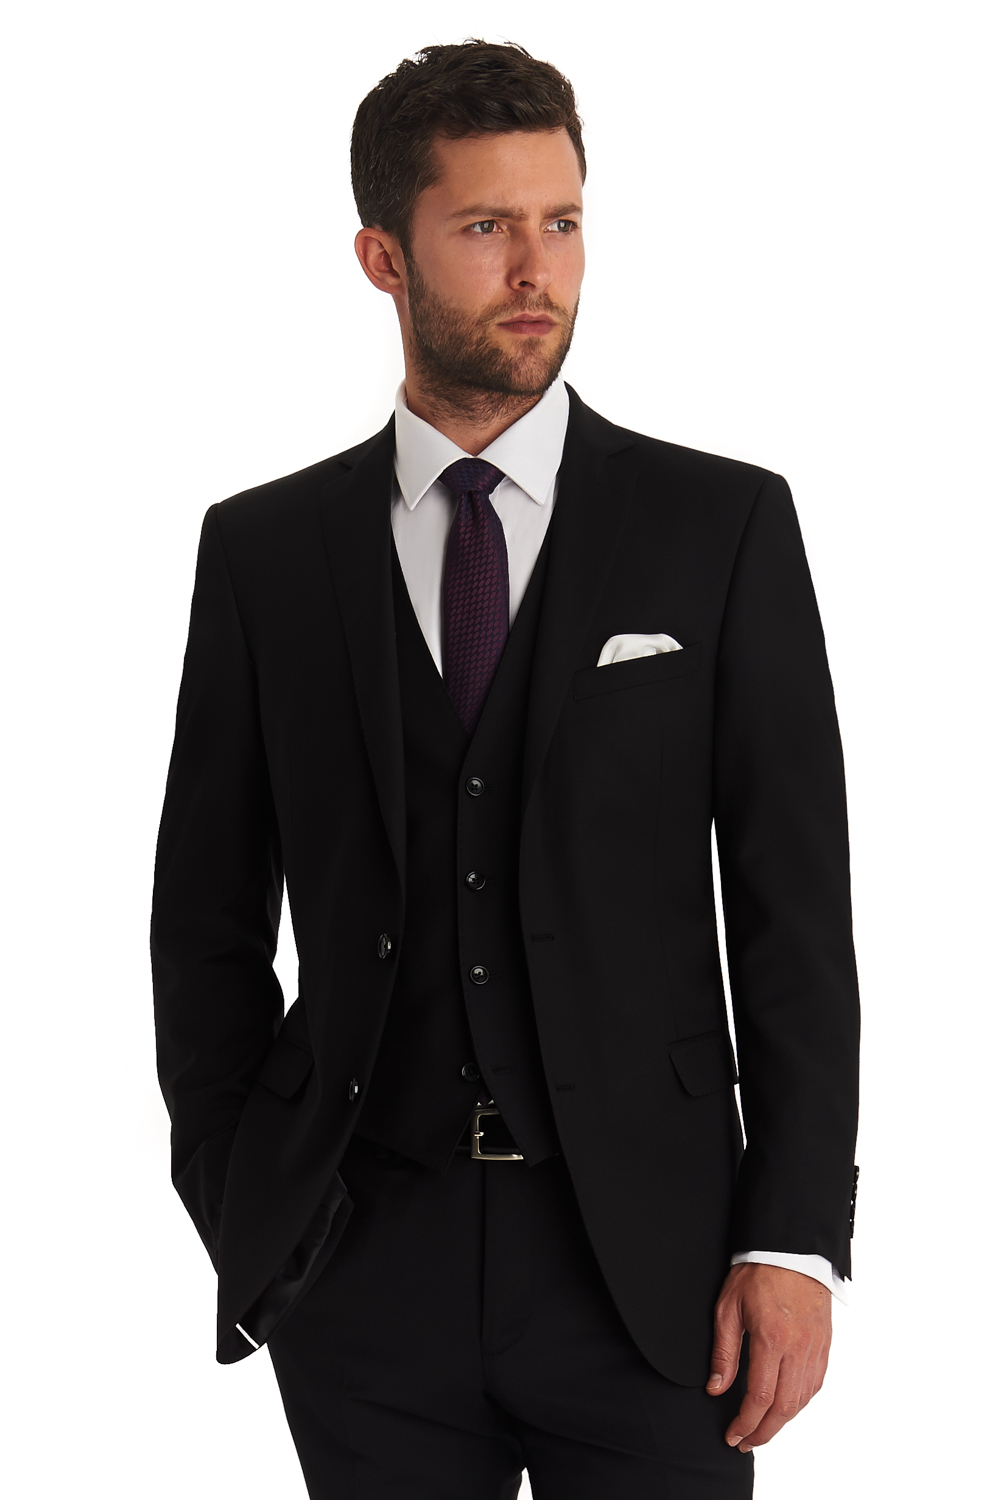 cf6bf2ab859cc Details about Moss 1851 Mens Black Suit Jacket Tailored Fit Single Breasted  Formal Blazer